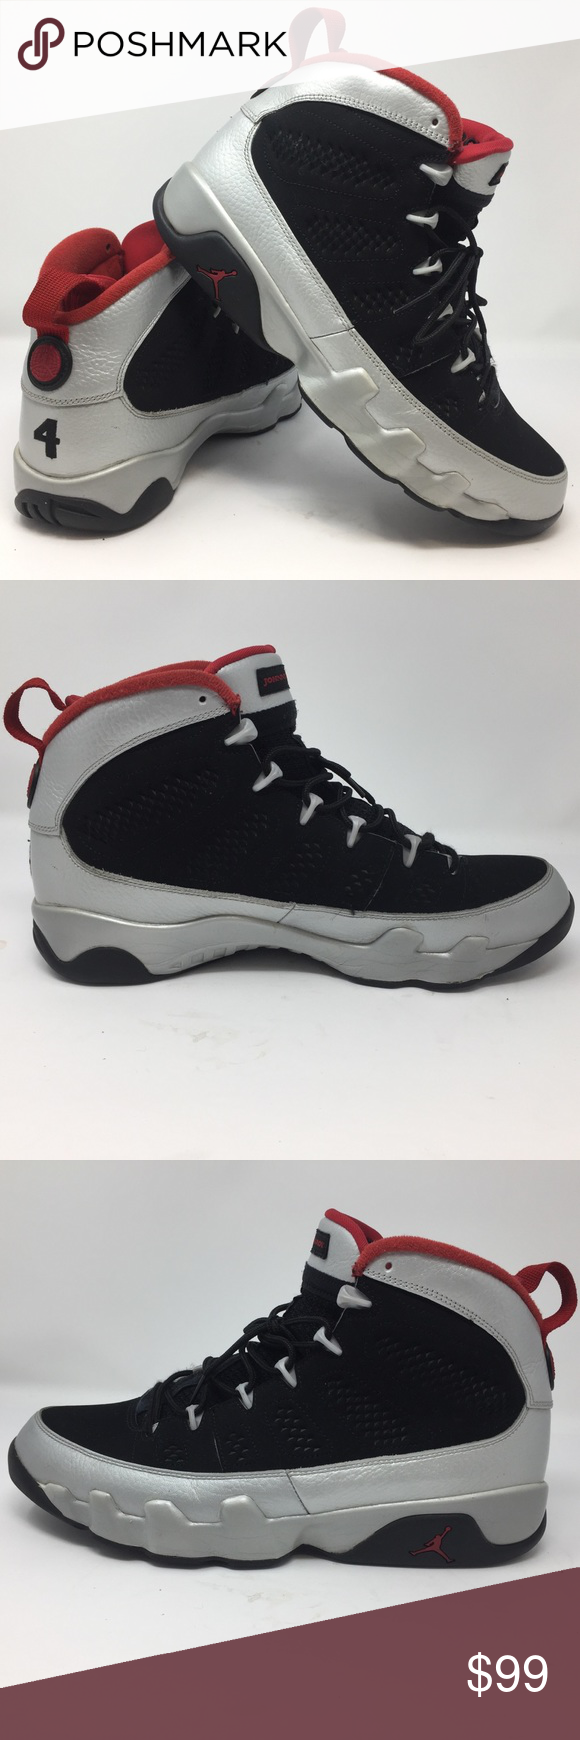 04f5a22f52a Nike Mens Air Jordan 9 Retro Johnny Kilroy 11 EUC Nike Mens Air Jordan 9  Retro Johnny Kilroy (Jordan's alter ego) size 11 In excellent used  condition.